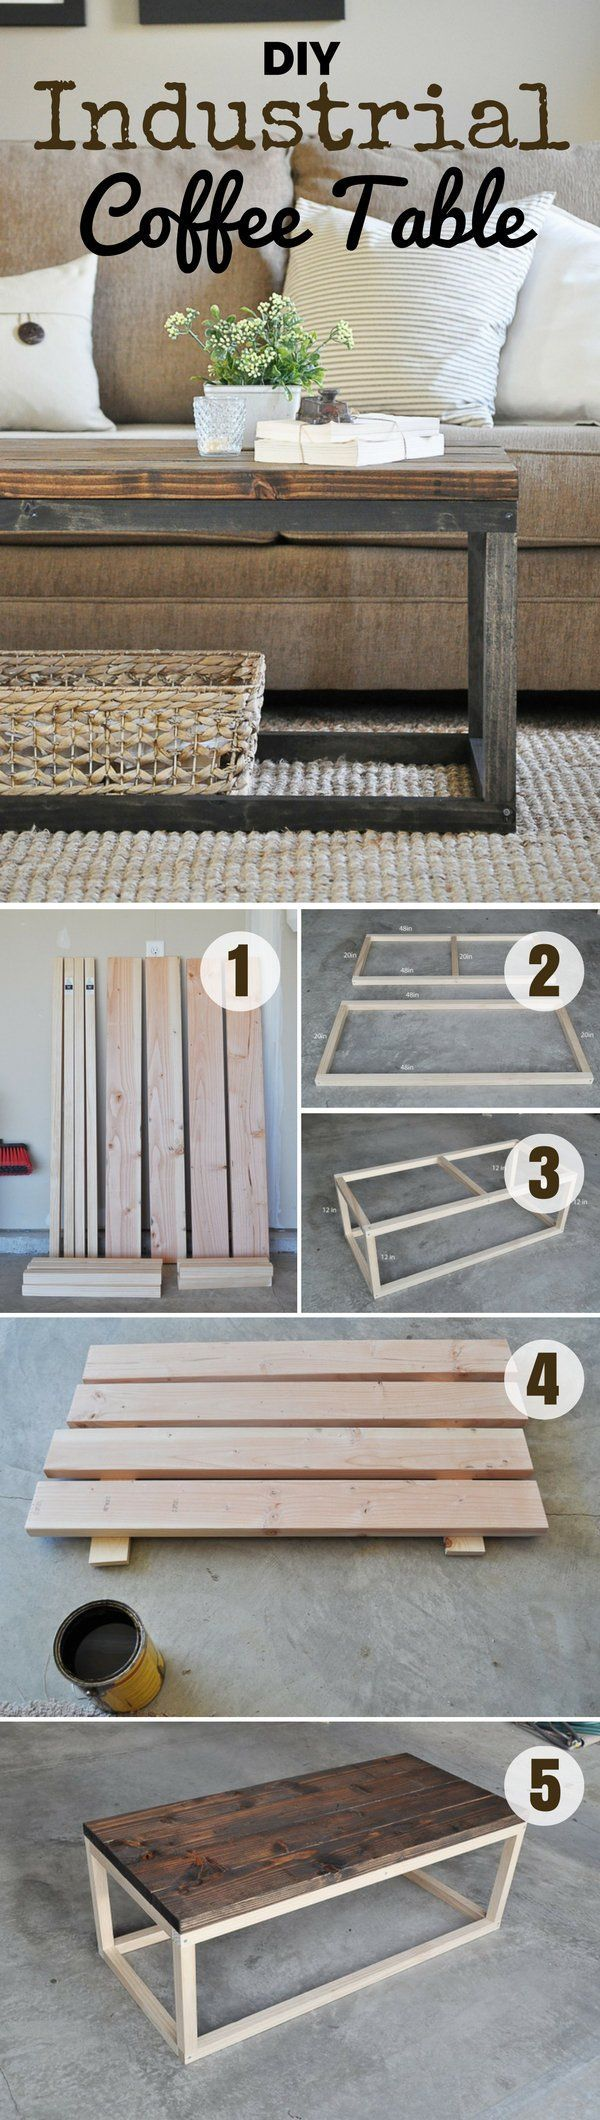 Check out how to build this easy DIY Industrial Coffee Table @istandarddesign